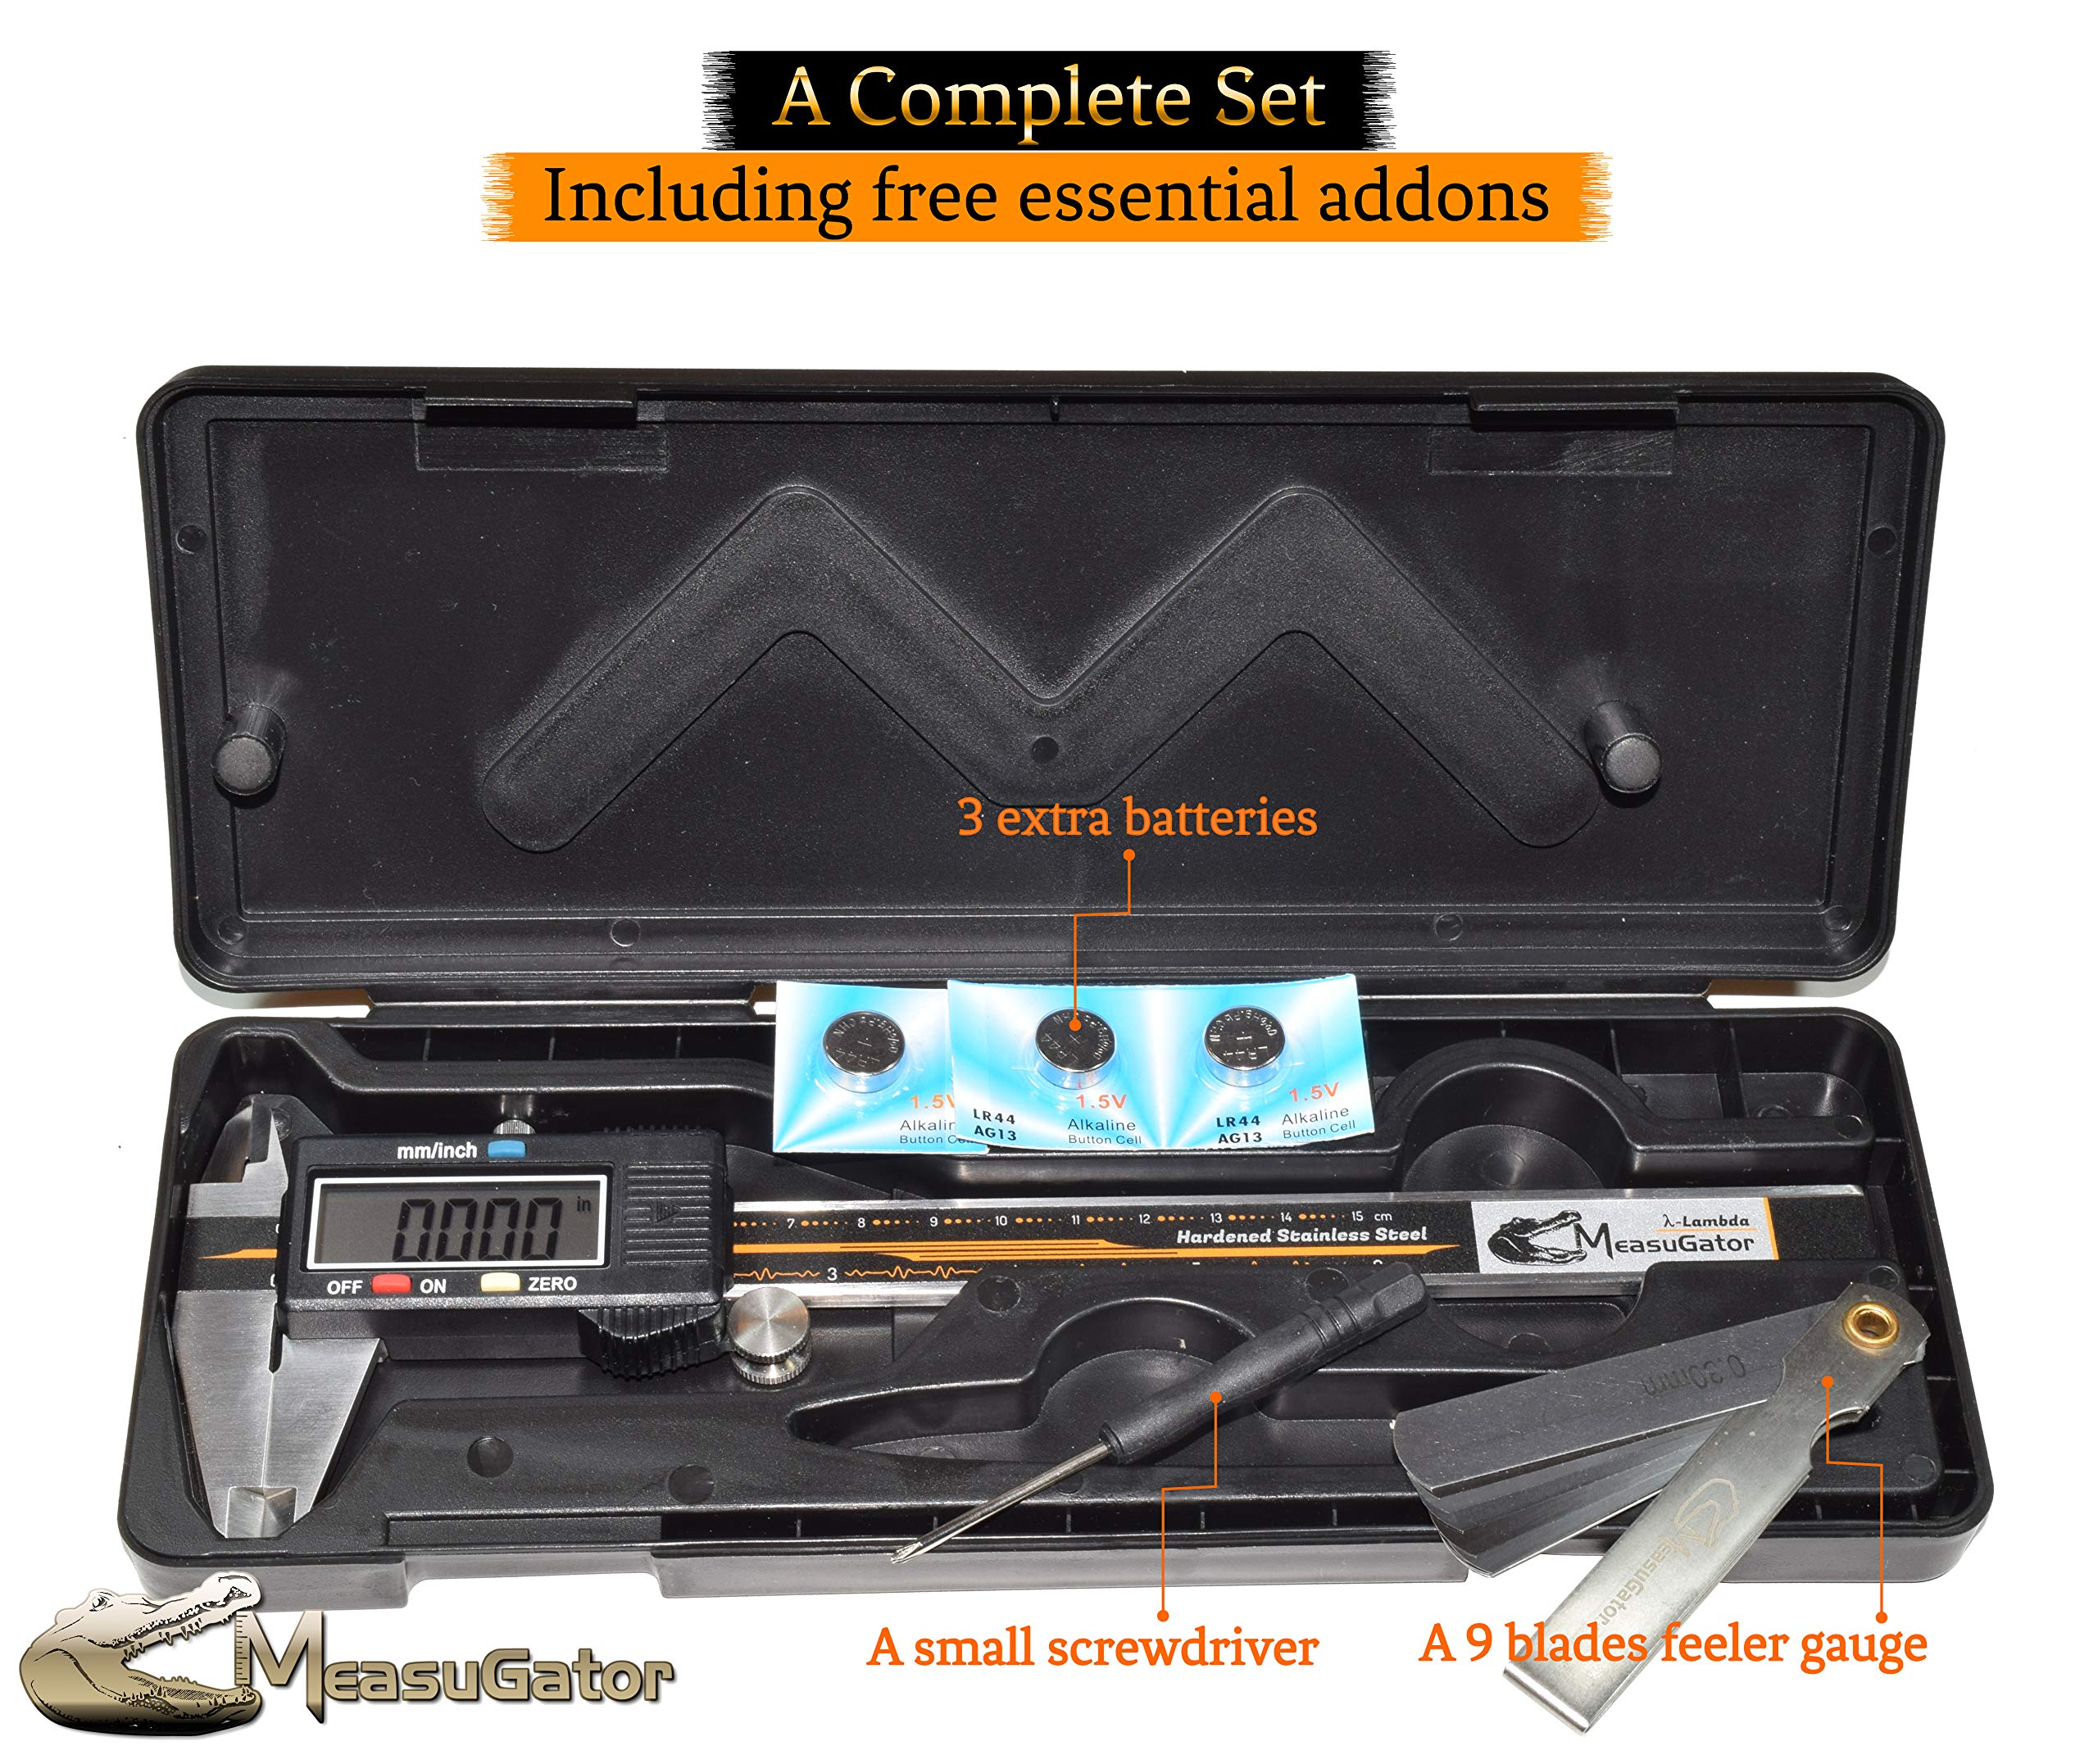 MeasuGator Lambda Digital Caliper, 3 Addons, Verifiable Accuracy, Automatic Off/On, 6 Inch/150 mm Range, SAE/Metric Modes, Premium Quality Stainless Steel Calipers, w/Spare Batteries, Feeler Gauge by MeasuGator (Image #2)